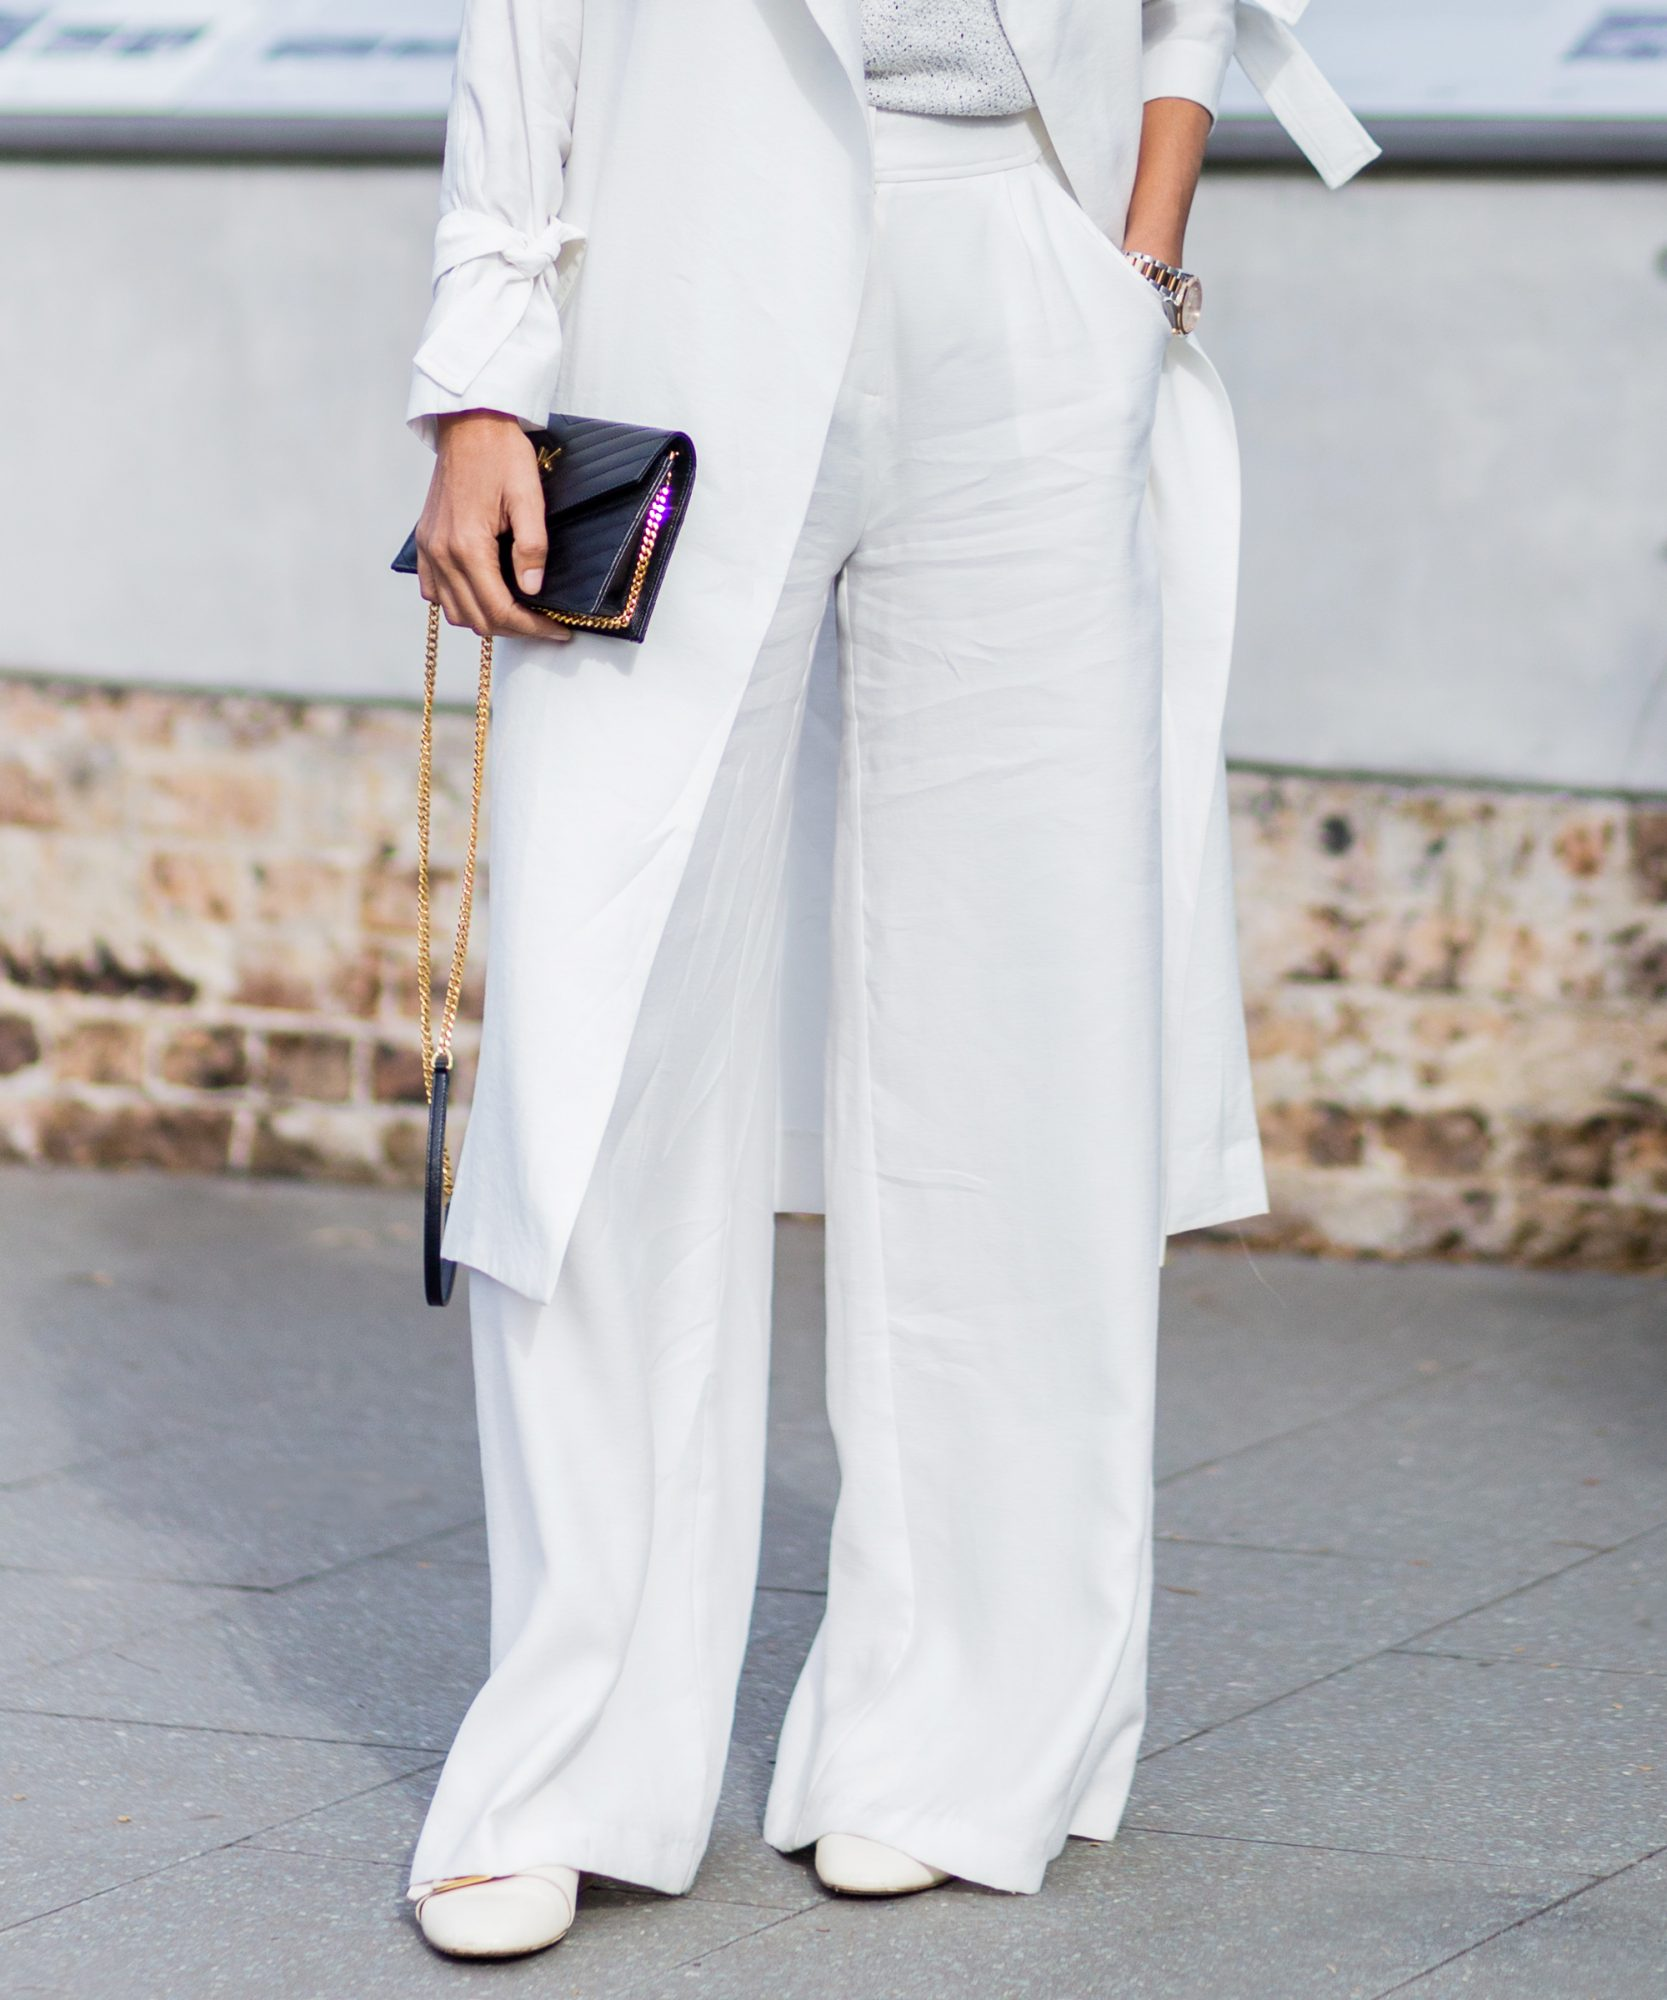 Perfect Pairings: 7 Ways to Style Wide-Leg Pants With Flats